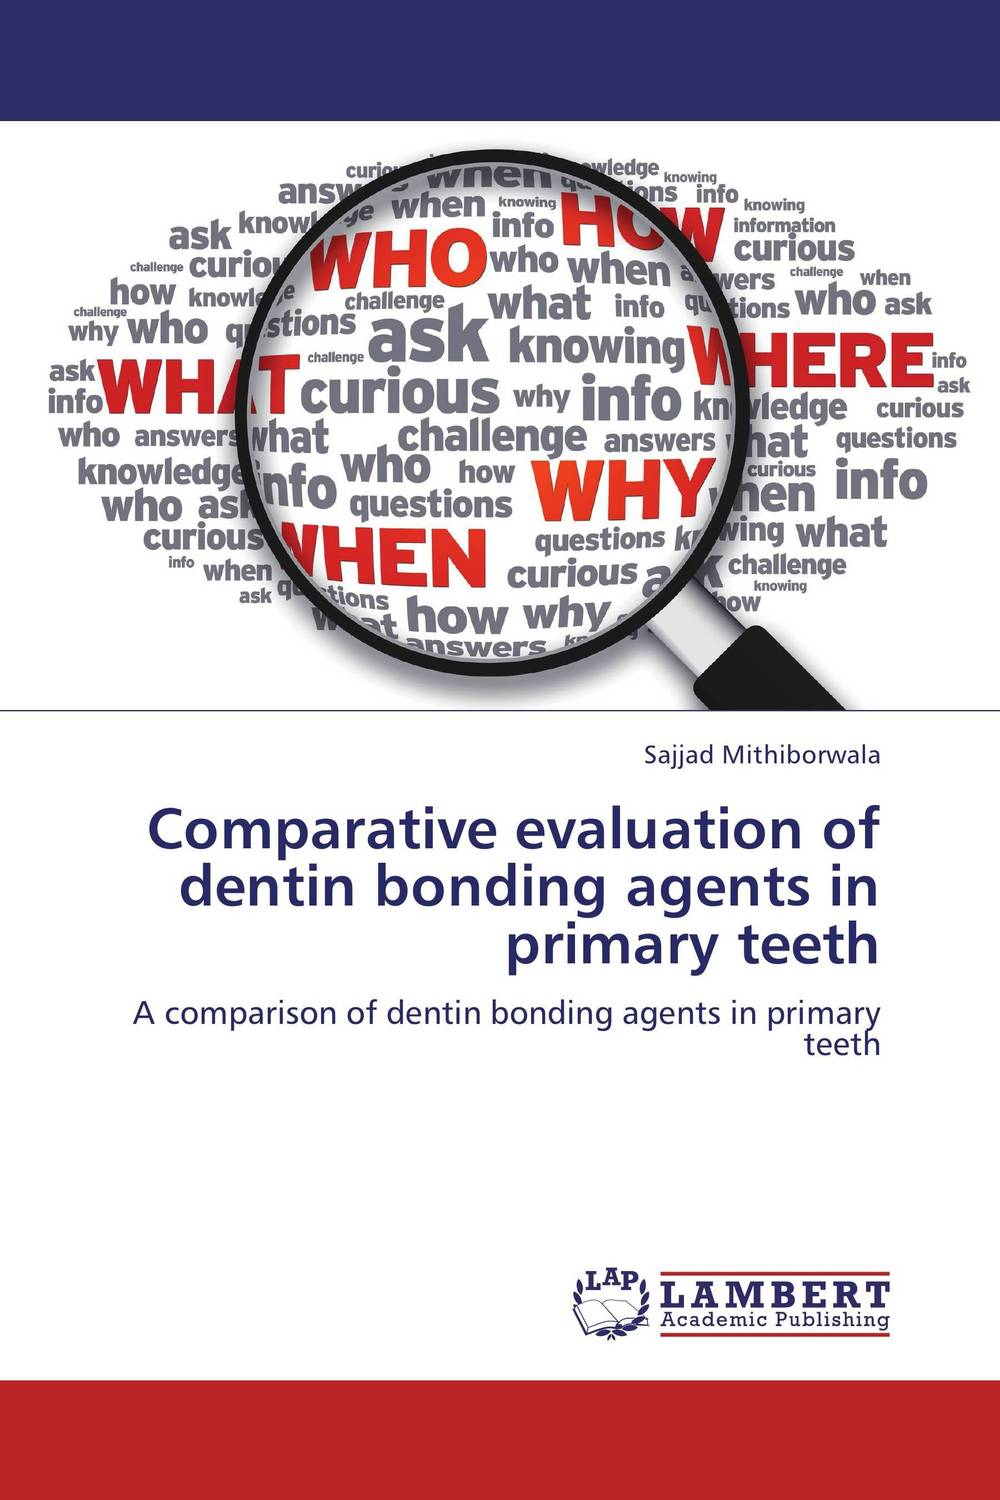 Comparative evaluation of dentin bonding agents in primary teeth revathi arun gupta and s g kaskhedikar synthesis evaluation and qsar study of antitubercular agents